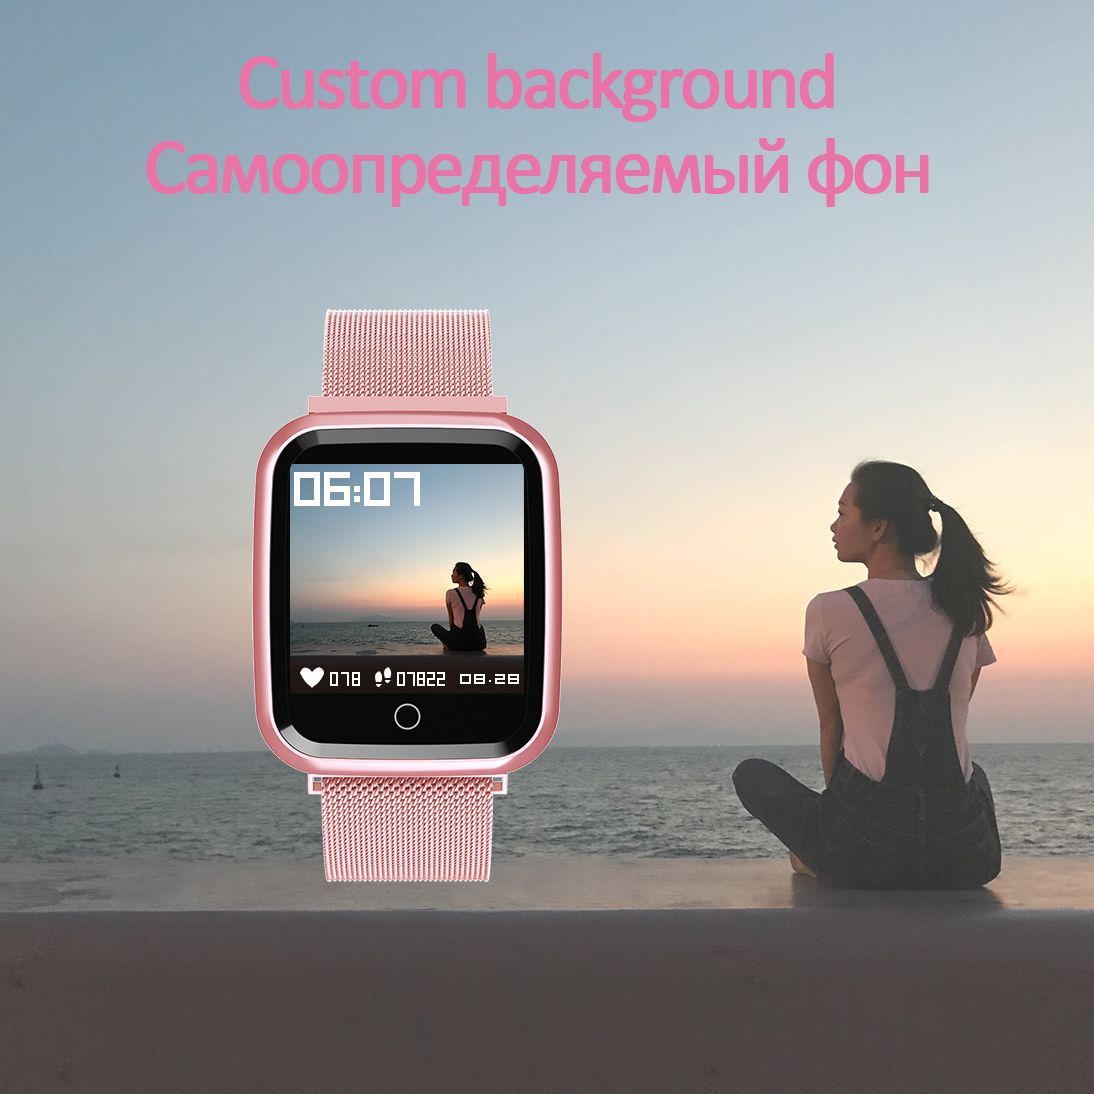 DAROBO N99 Sport and Heart rate monitor Smart watch with Waterproof Blood pressure monitor for men women available in Android IOS 1